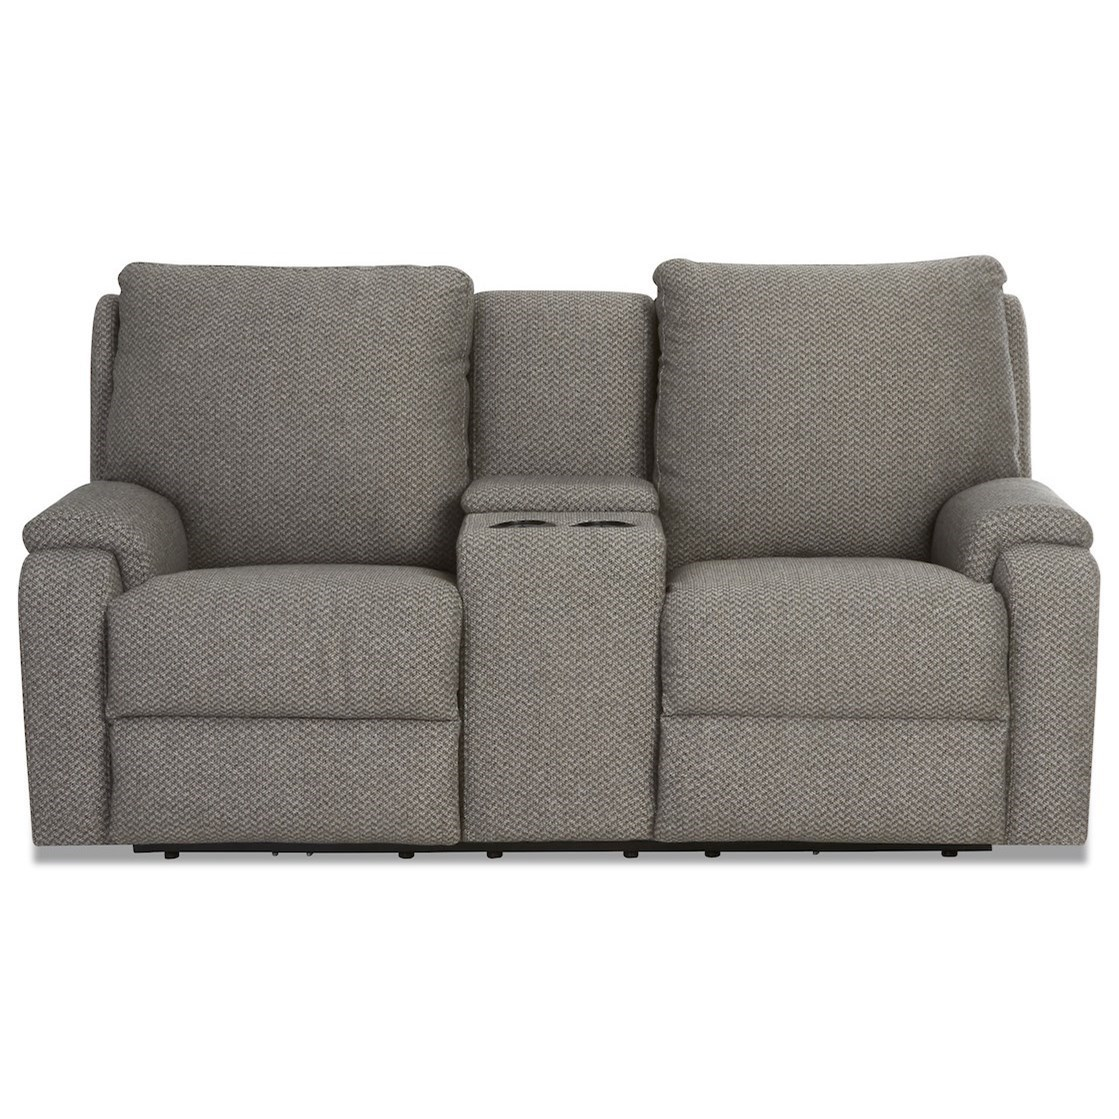 Casual Power Reclining Console Loveseat with USB Charging Ports